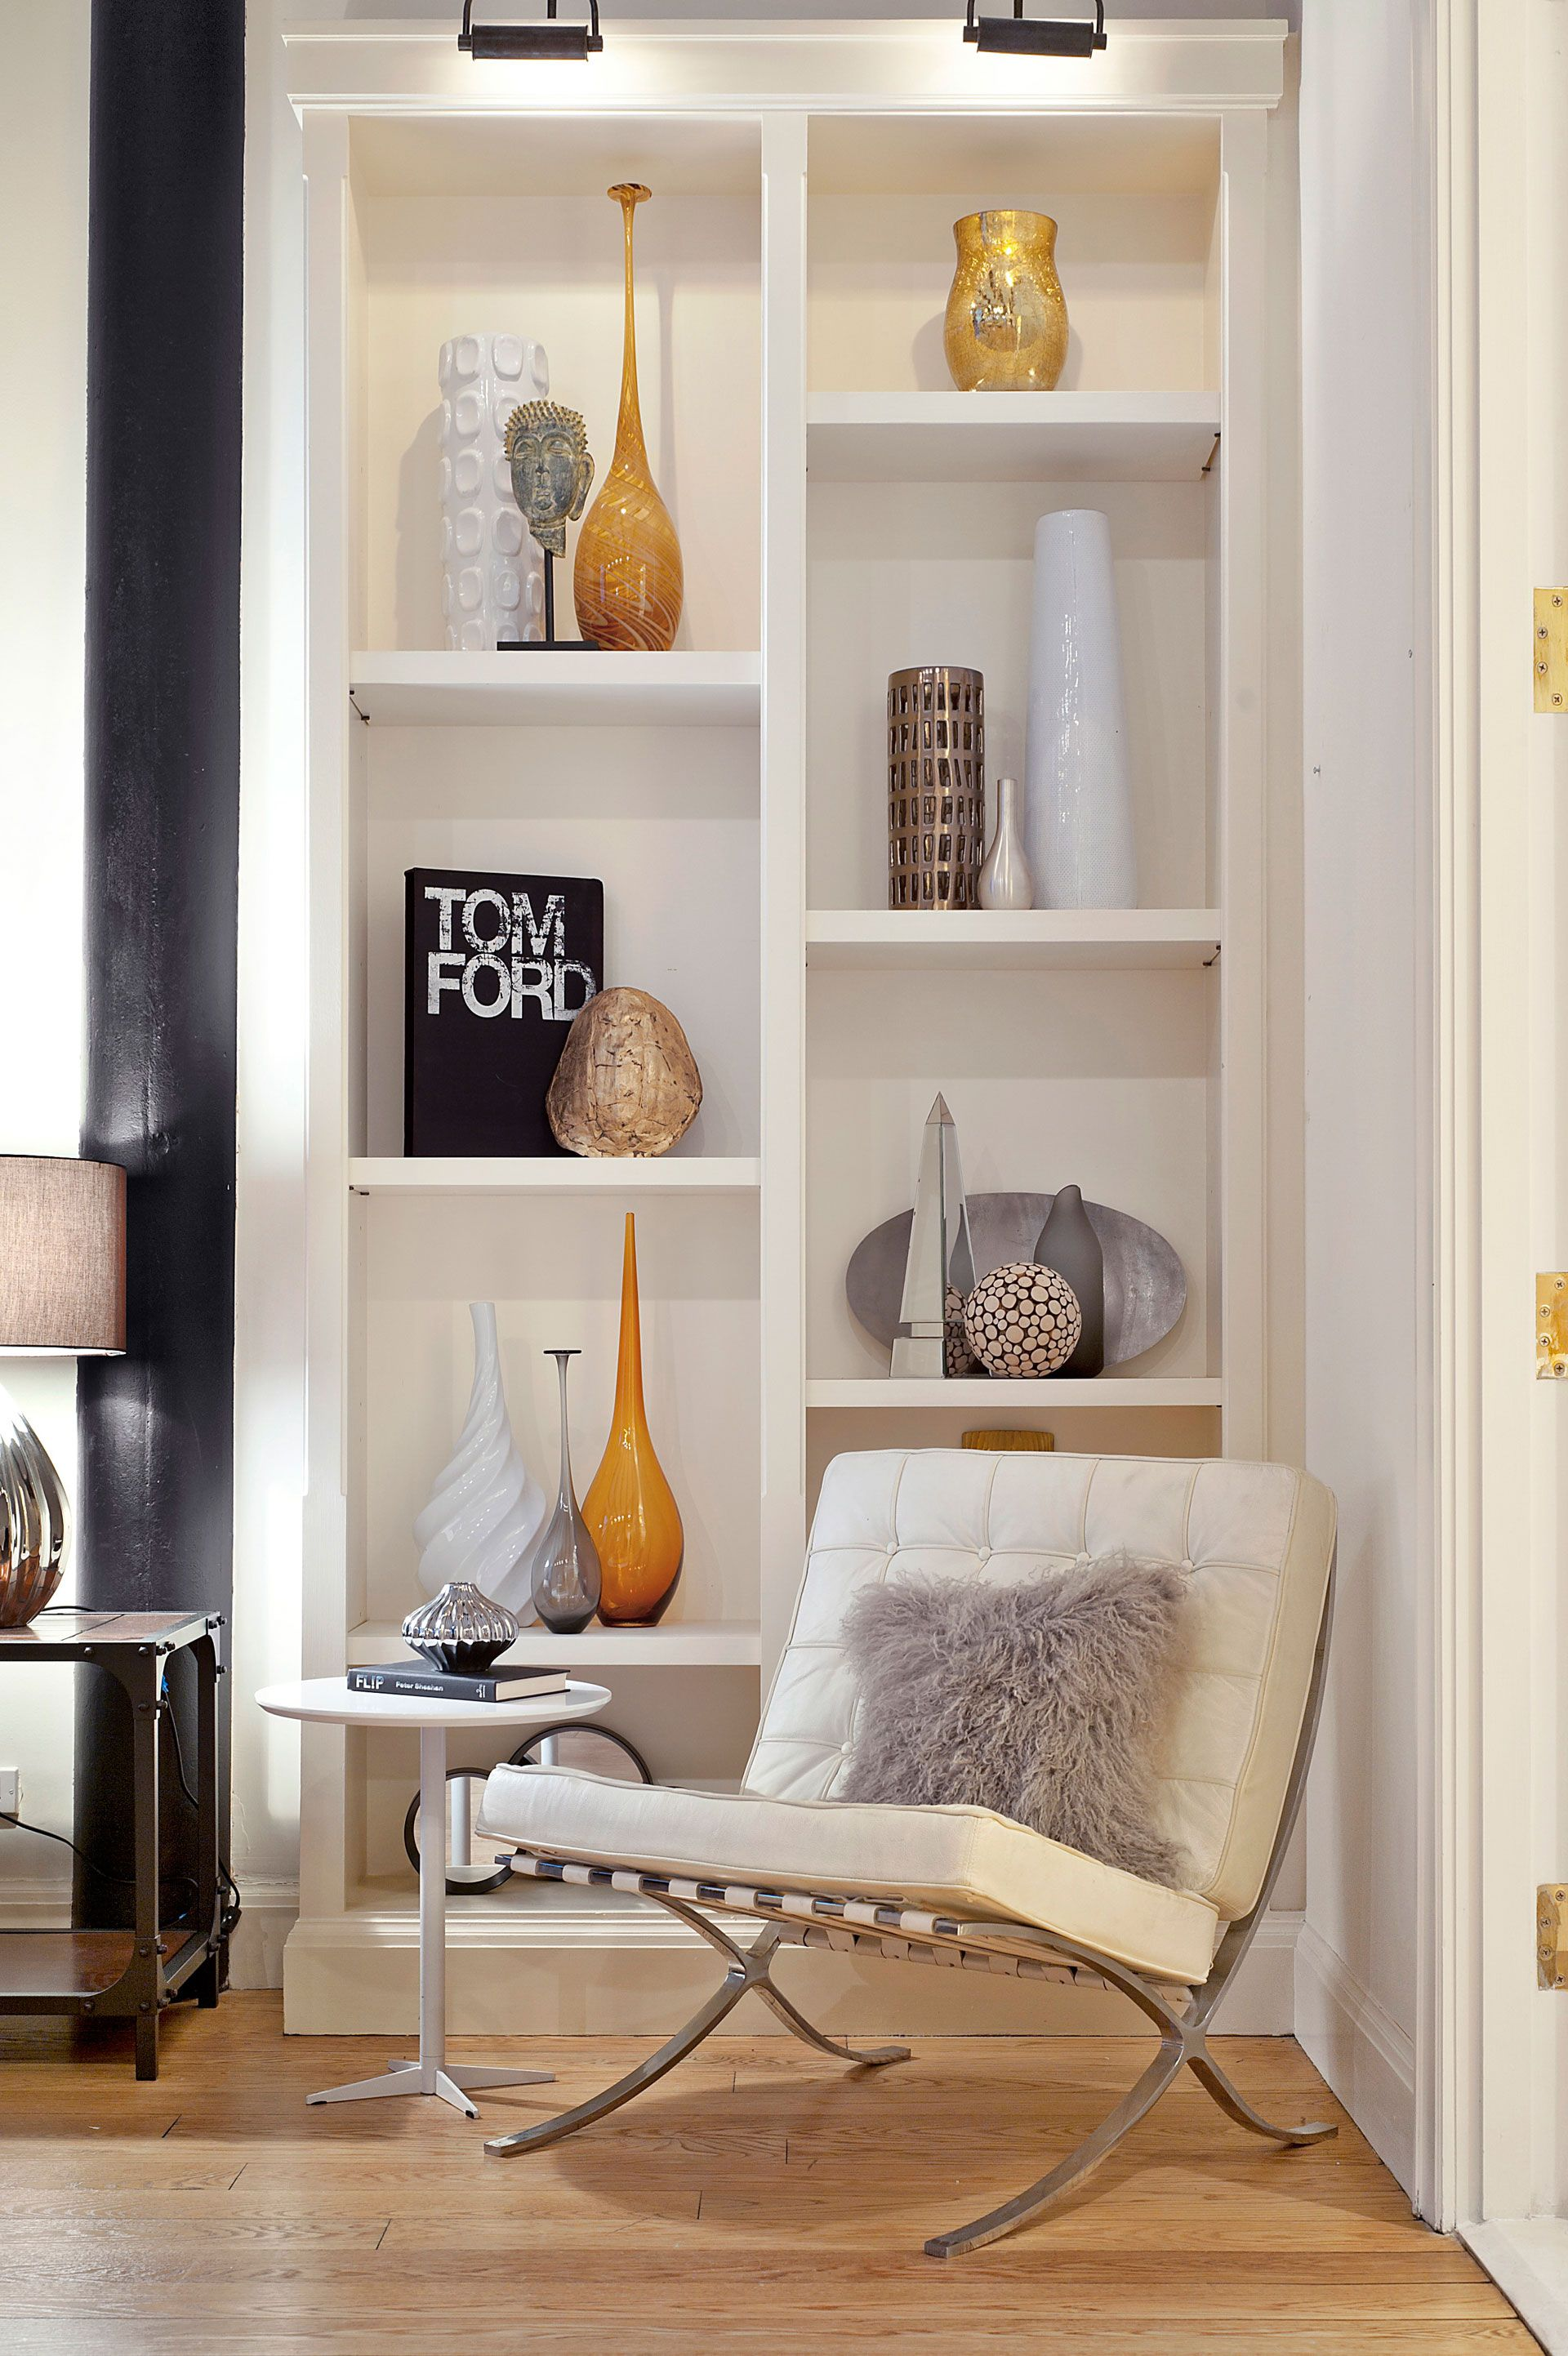 """Rather than jamming shelves full of knickknacks, Eisen opted for a minimalist look: Several books stand upright along with tall vases that fill the space without overcrowding it. She also added objects of various height and color to give the bookcase personality. Her favorite part about decorating this home? """"Turning wasted, unused space into a functional reading nook that can be enjoyed by many by simply adding a chair."""" Steal this look with clusters of tall, affordable vases.   - ..."""